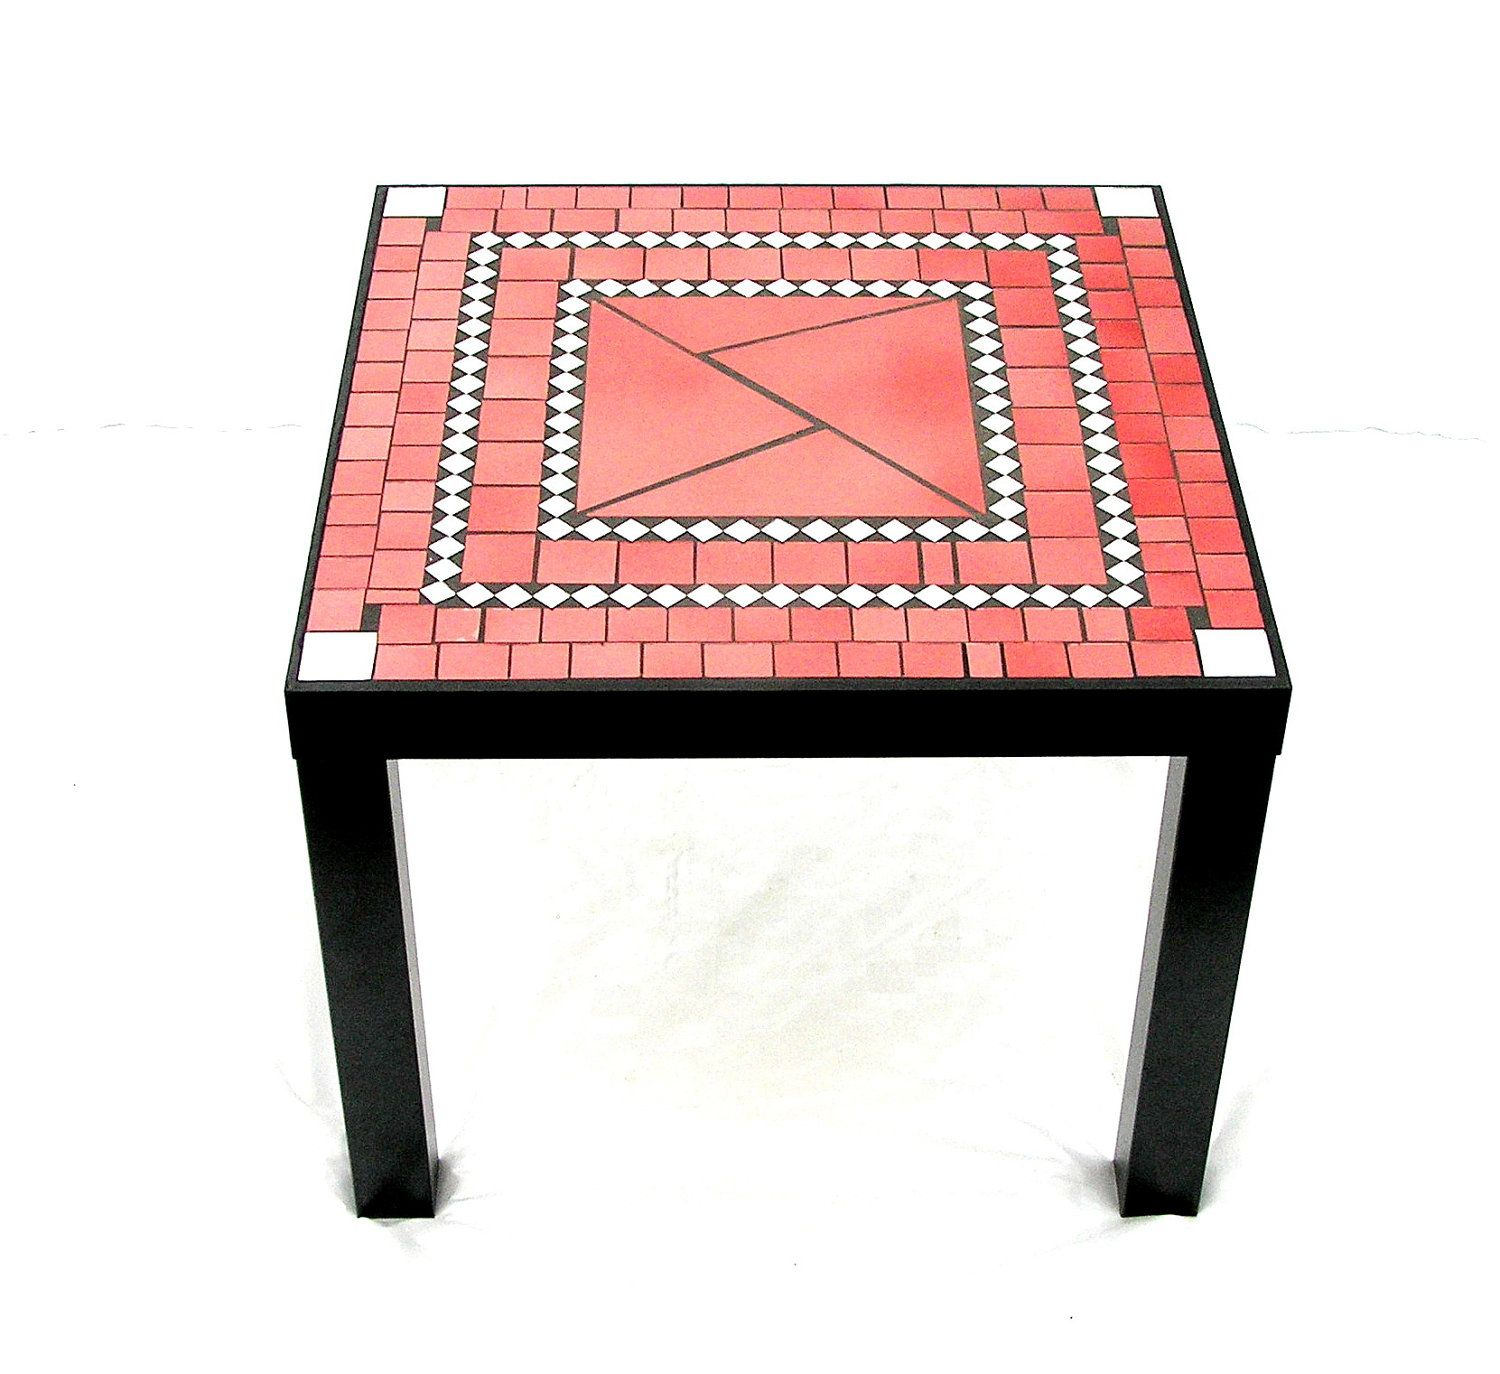 Mosaic Coffee Table Modern Furniture Red Black Salmon Pink Etsy Mosaic Mosaic Coffee Table Red Coffee Tables [ 1374 x 1500 Pixel ]